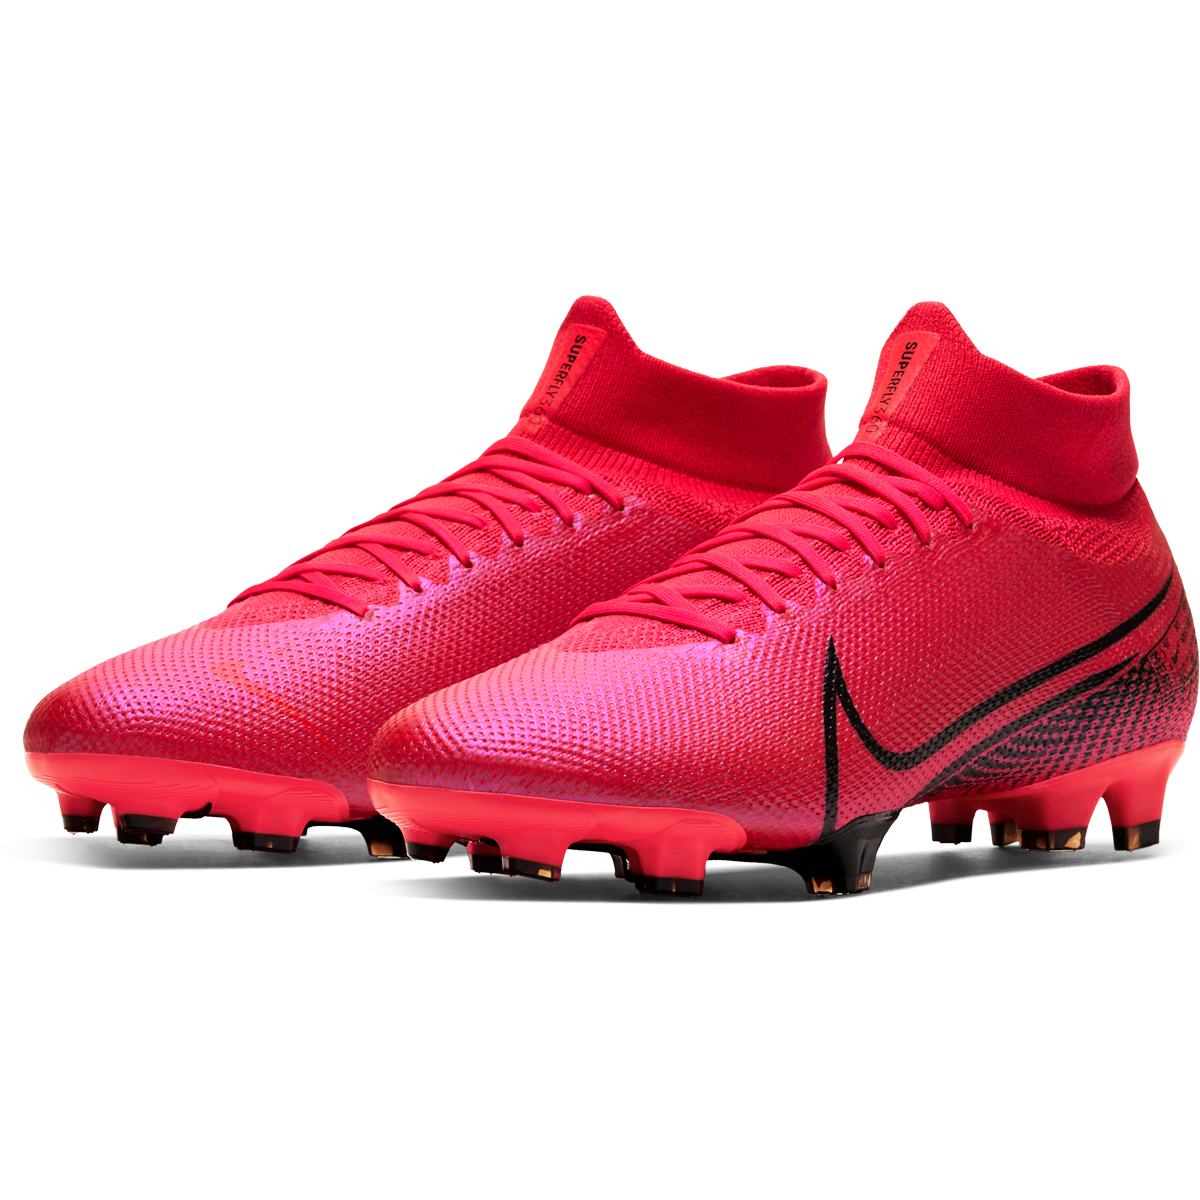 Nike Mercurial Superfly 7 Pro Fg Soccer Cleat Laser Crimson Black 9 In 2020 Soccer Cleats Soccer Cleats Nike Cleats